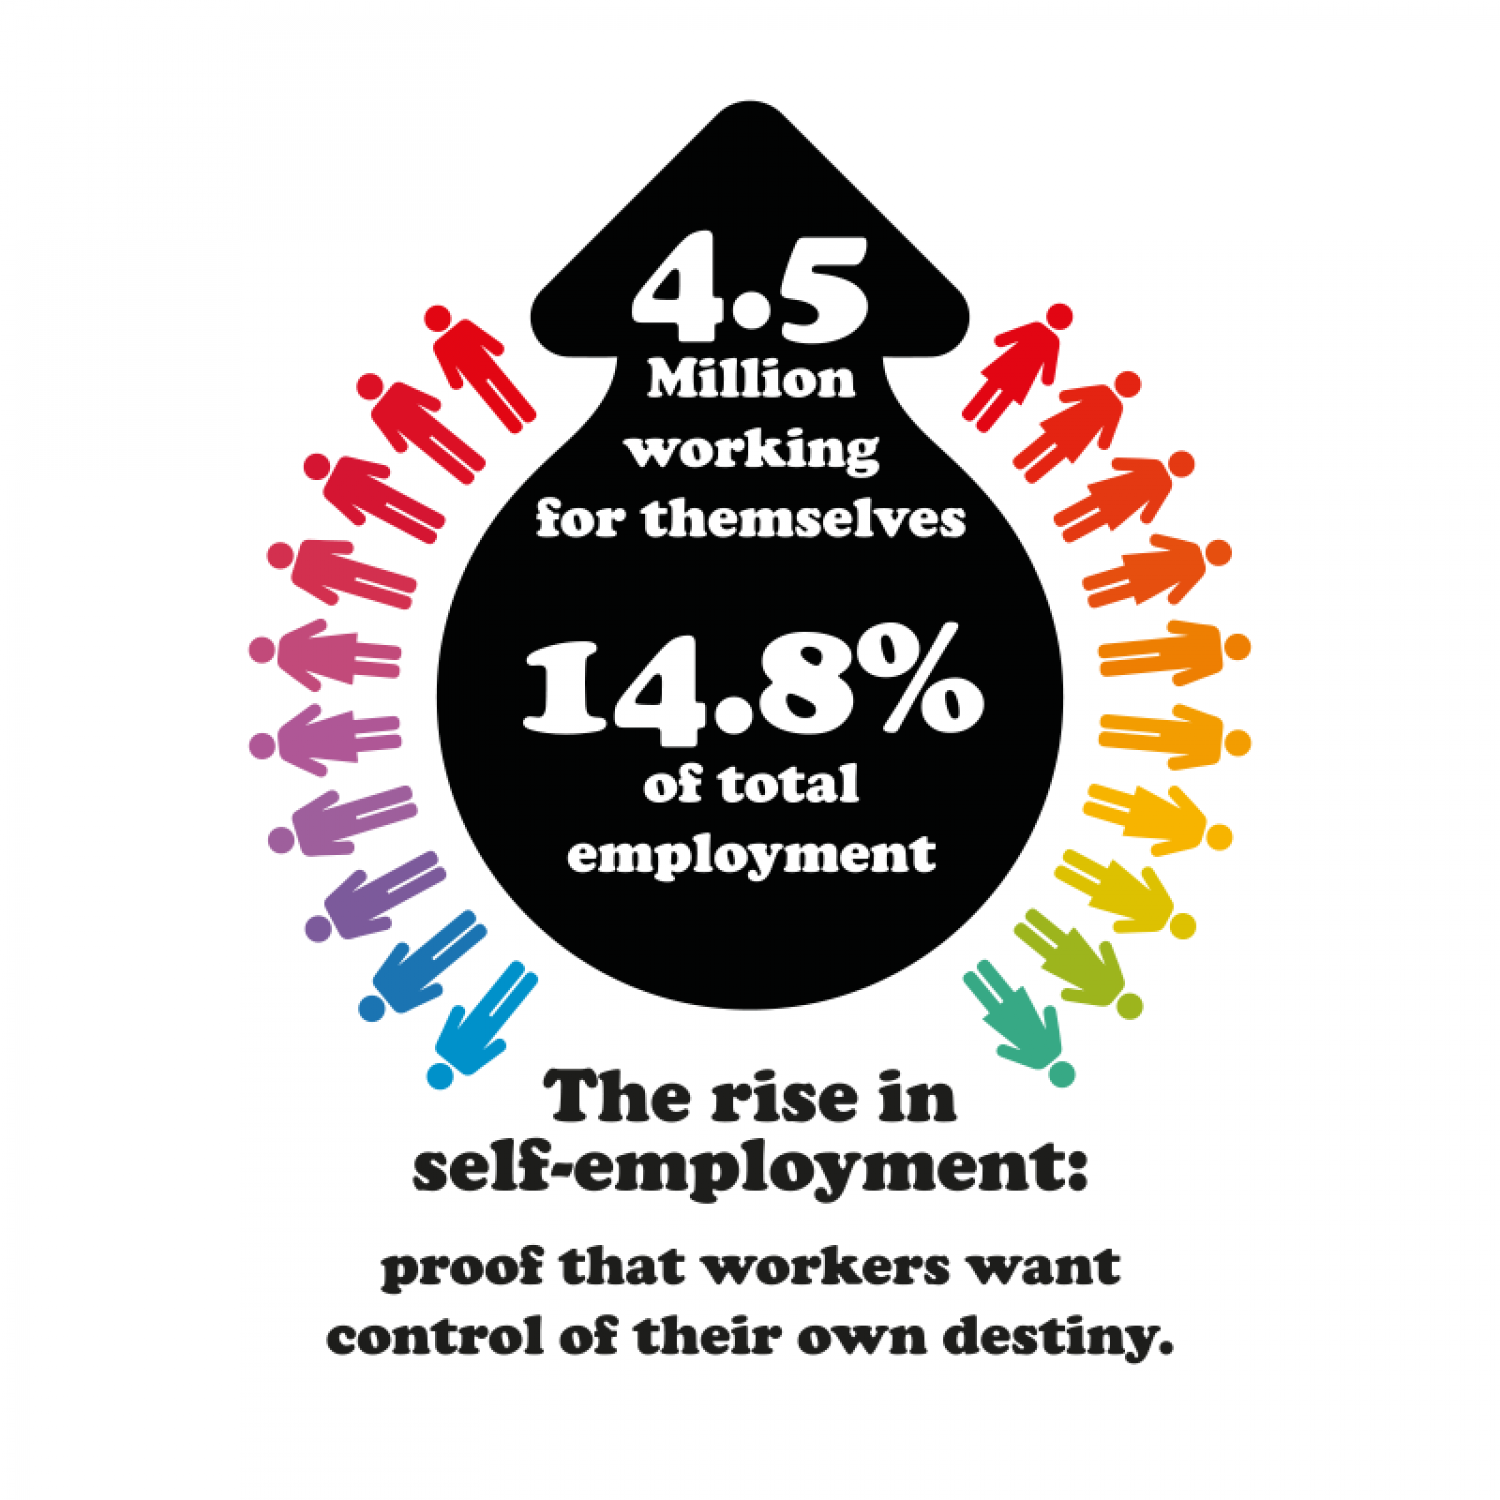 The Rise in Self-Employment Infographic